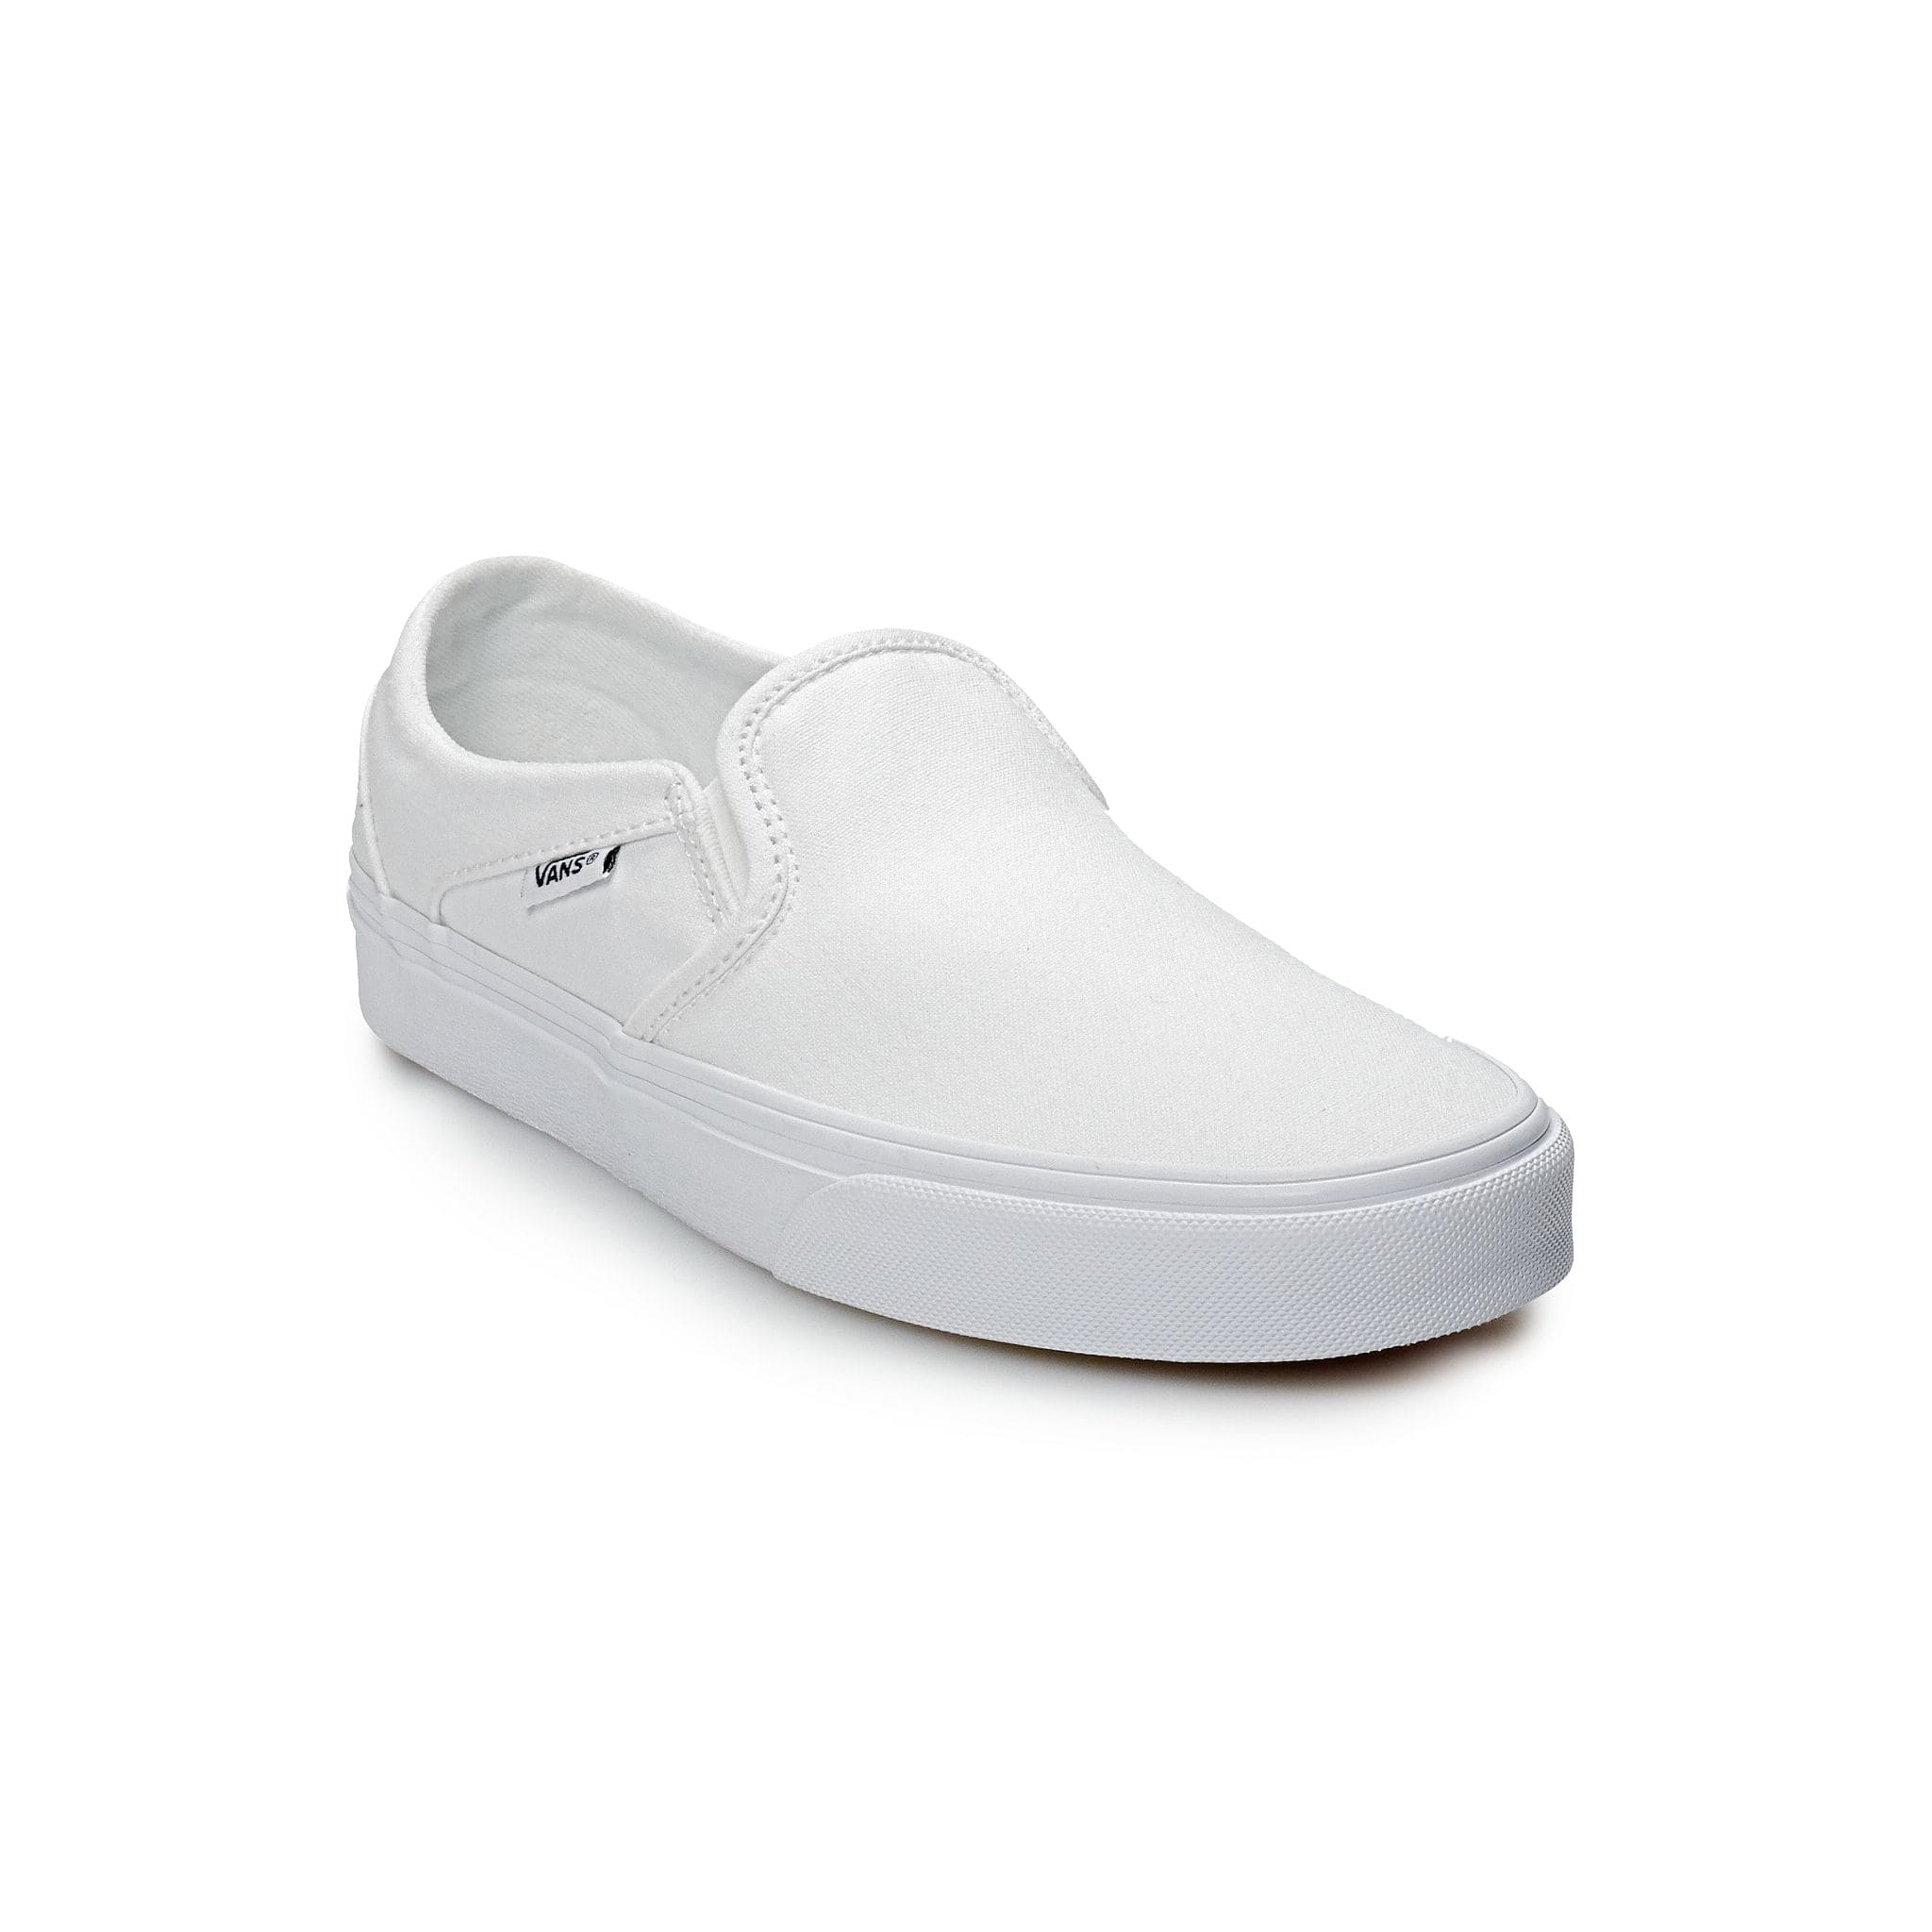 Vans® Asher Women's Skate Shoes $25.5